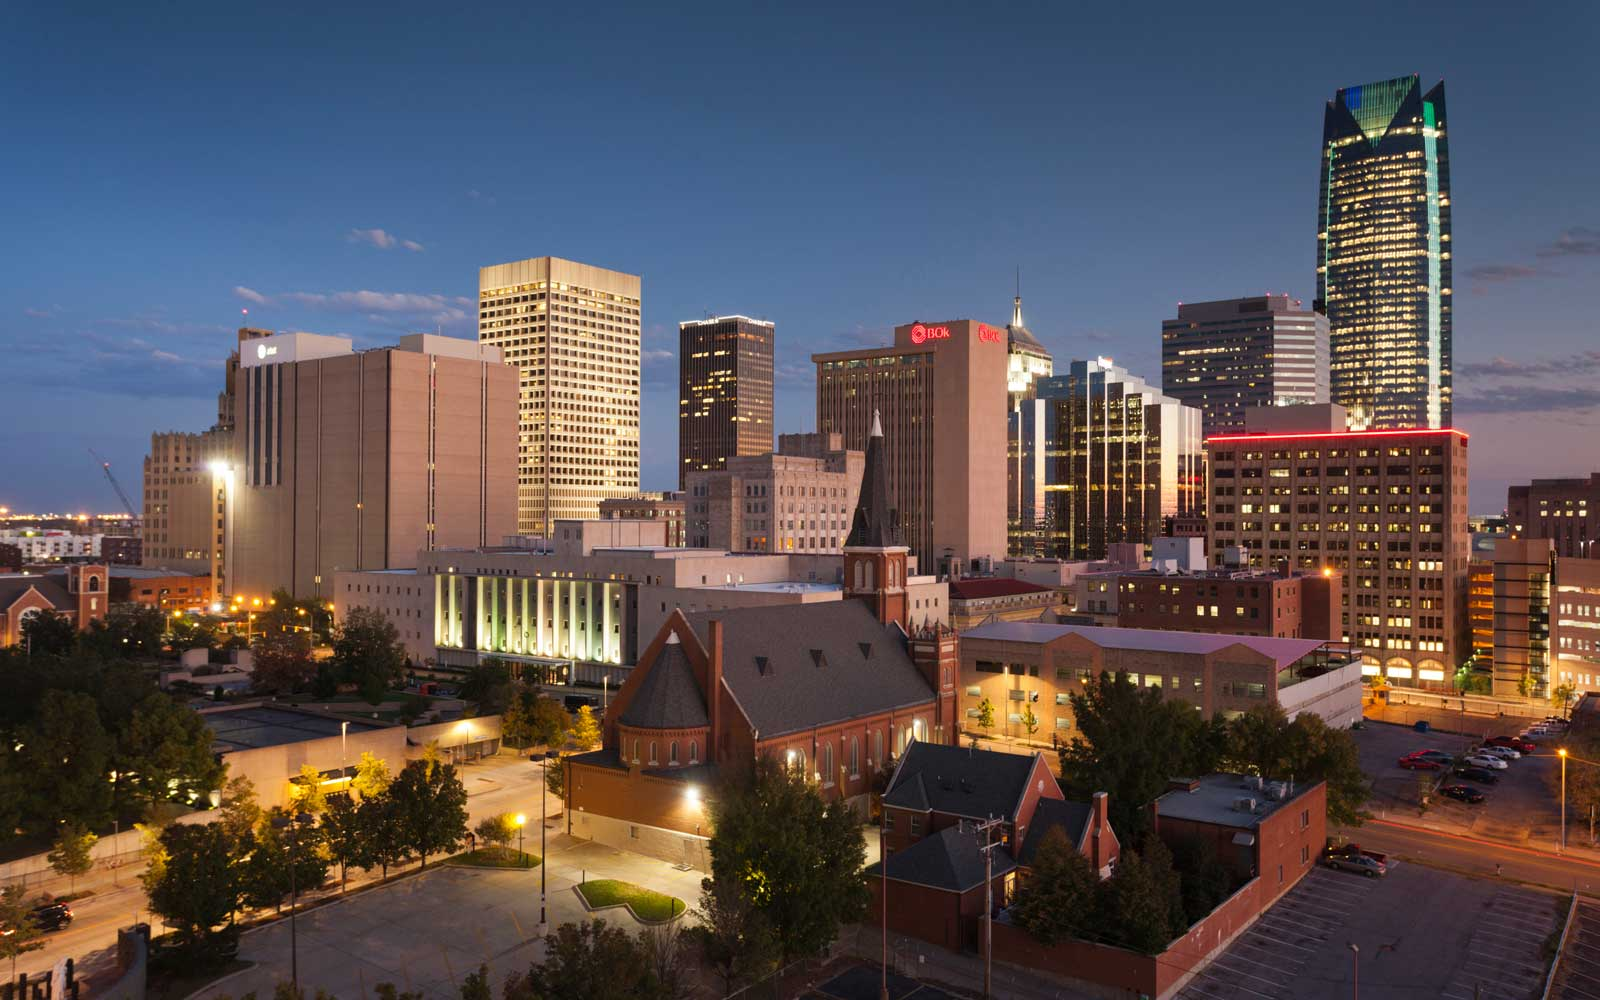 Devon Tower and city skyline at dusk, Oklahoma City, Oklahoma